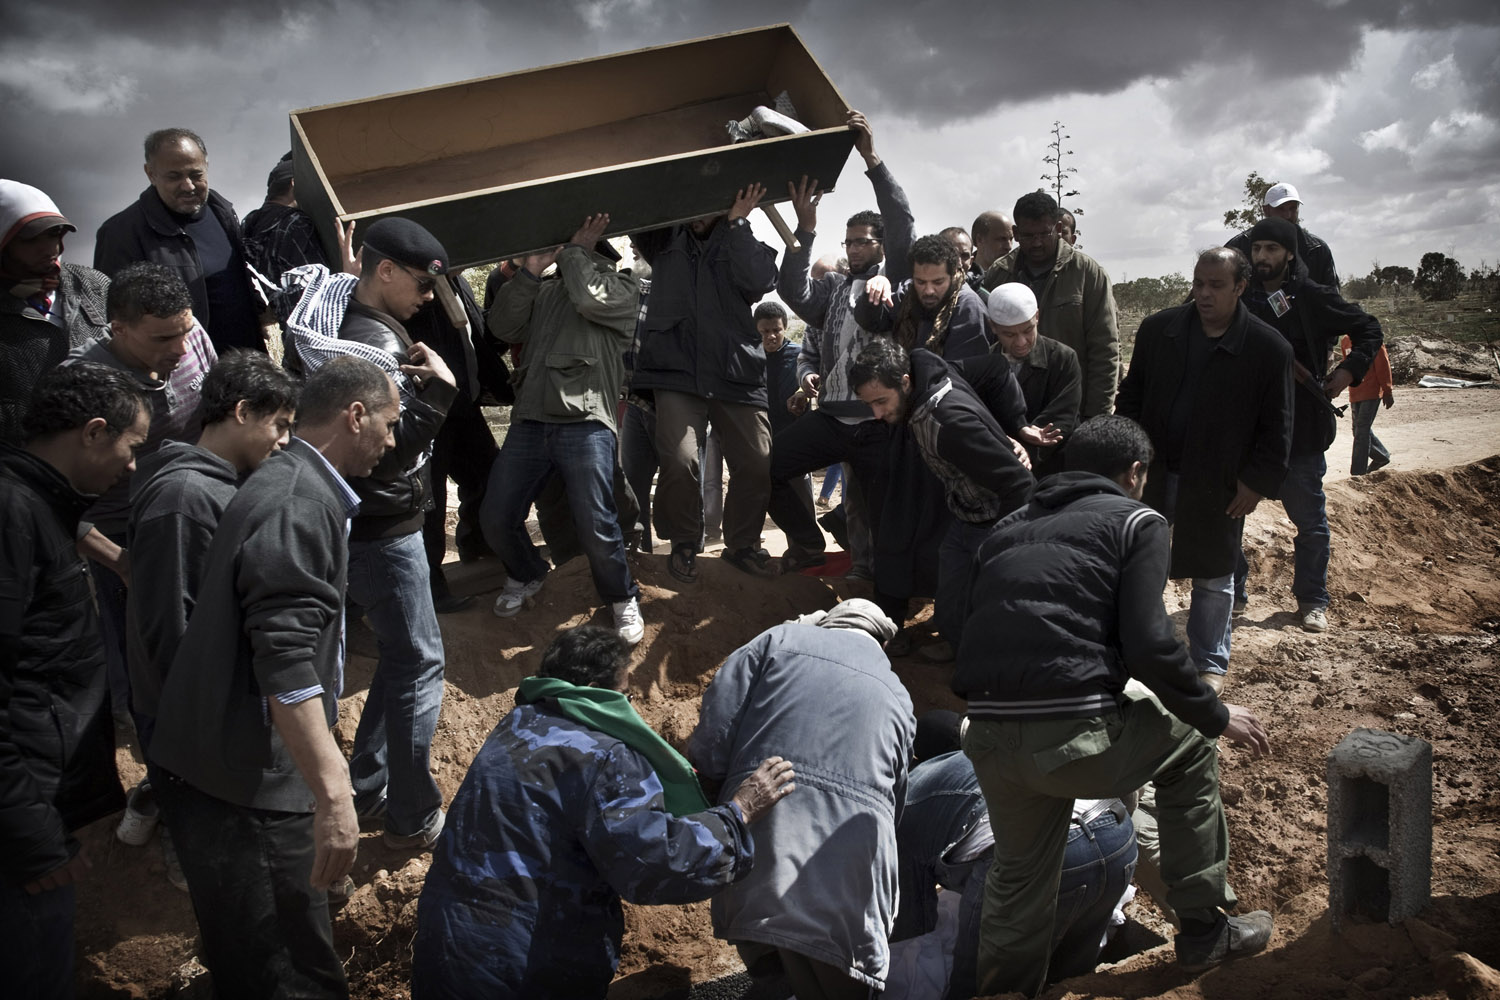 March 20, 2011. A funeral in a cemetery in Benghazi, Libya.